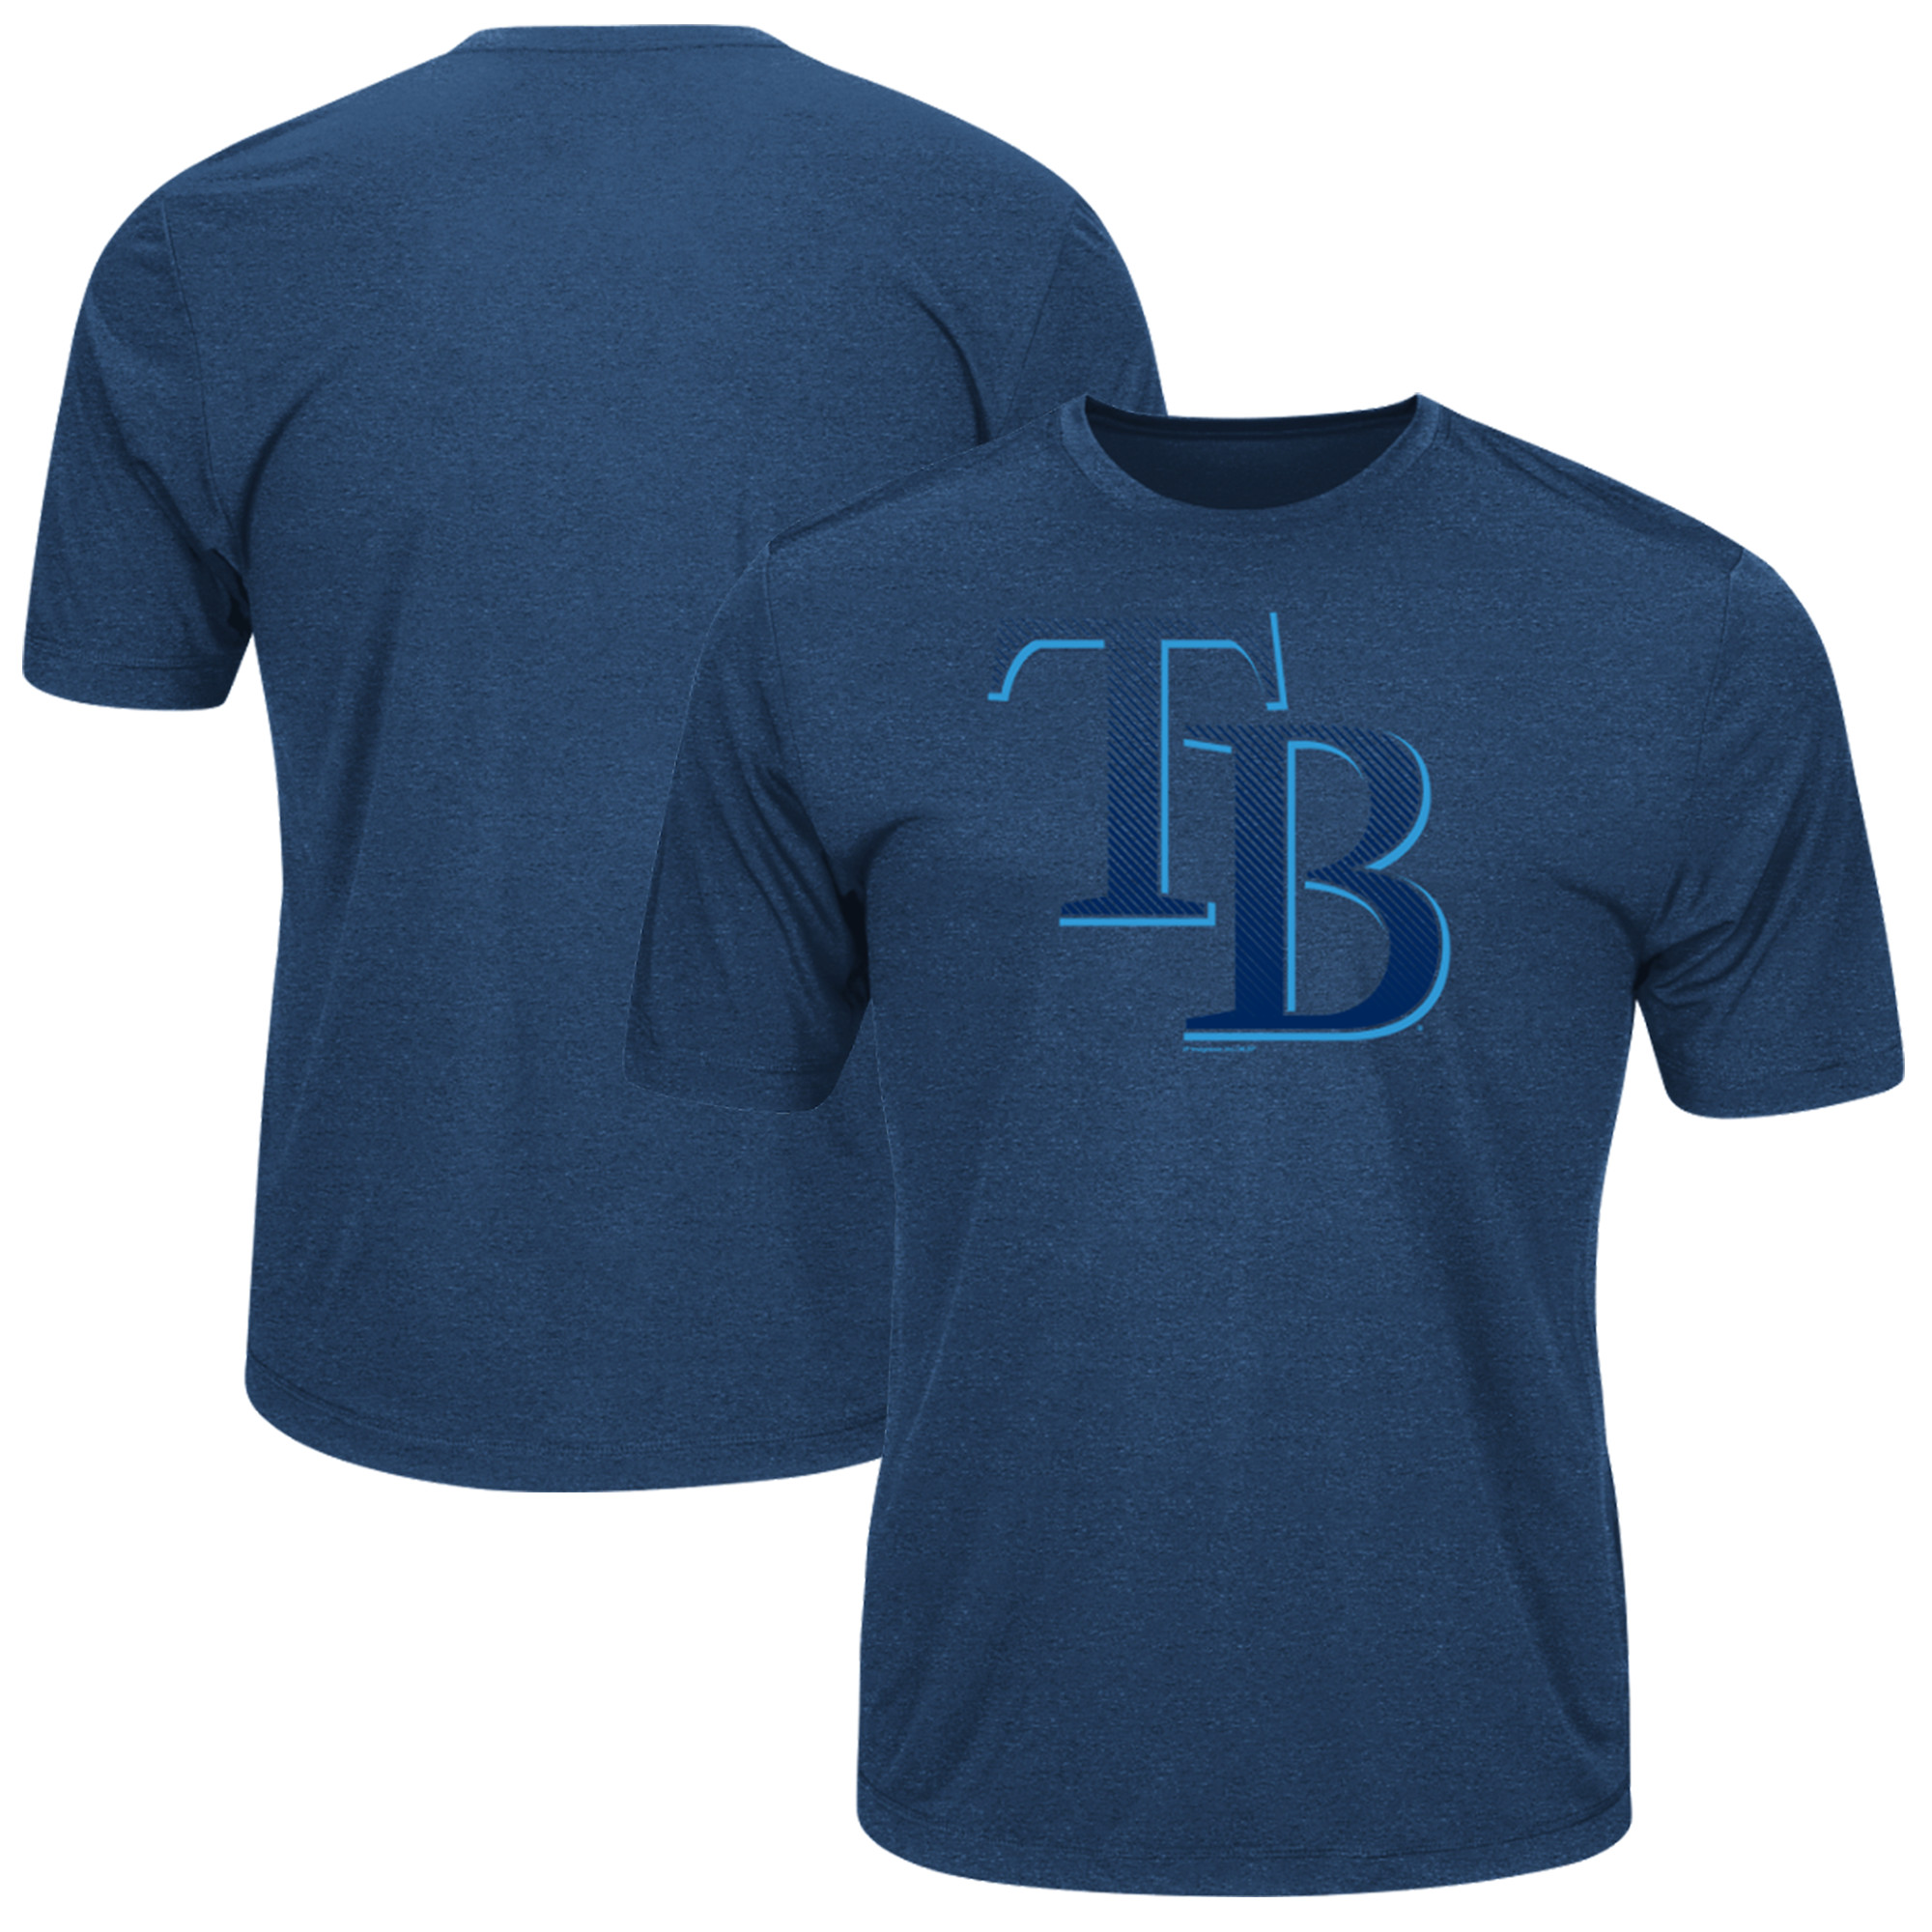 Men's Majestic Navy Tampa Bay Rays Big & Tall Statement Logo T-Shirt